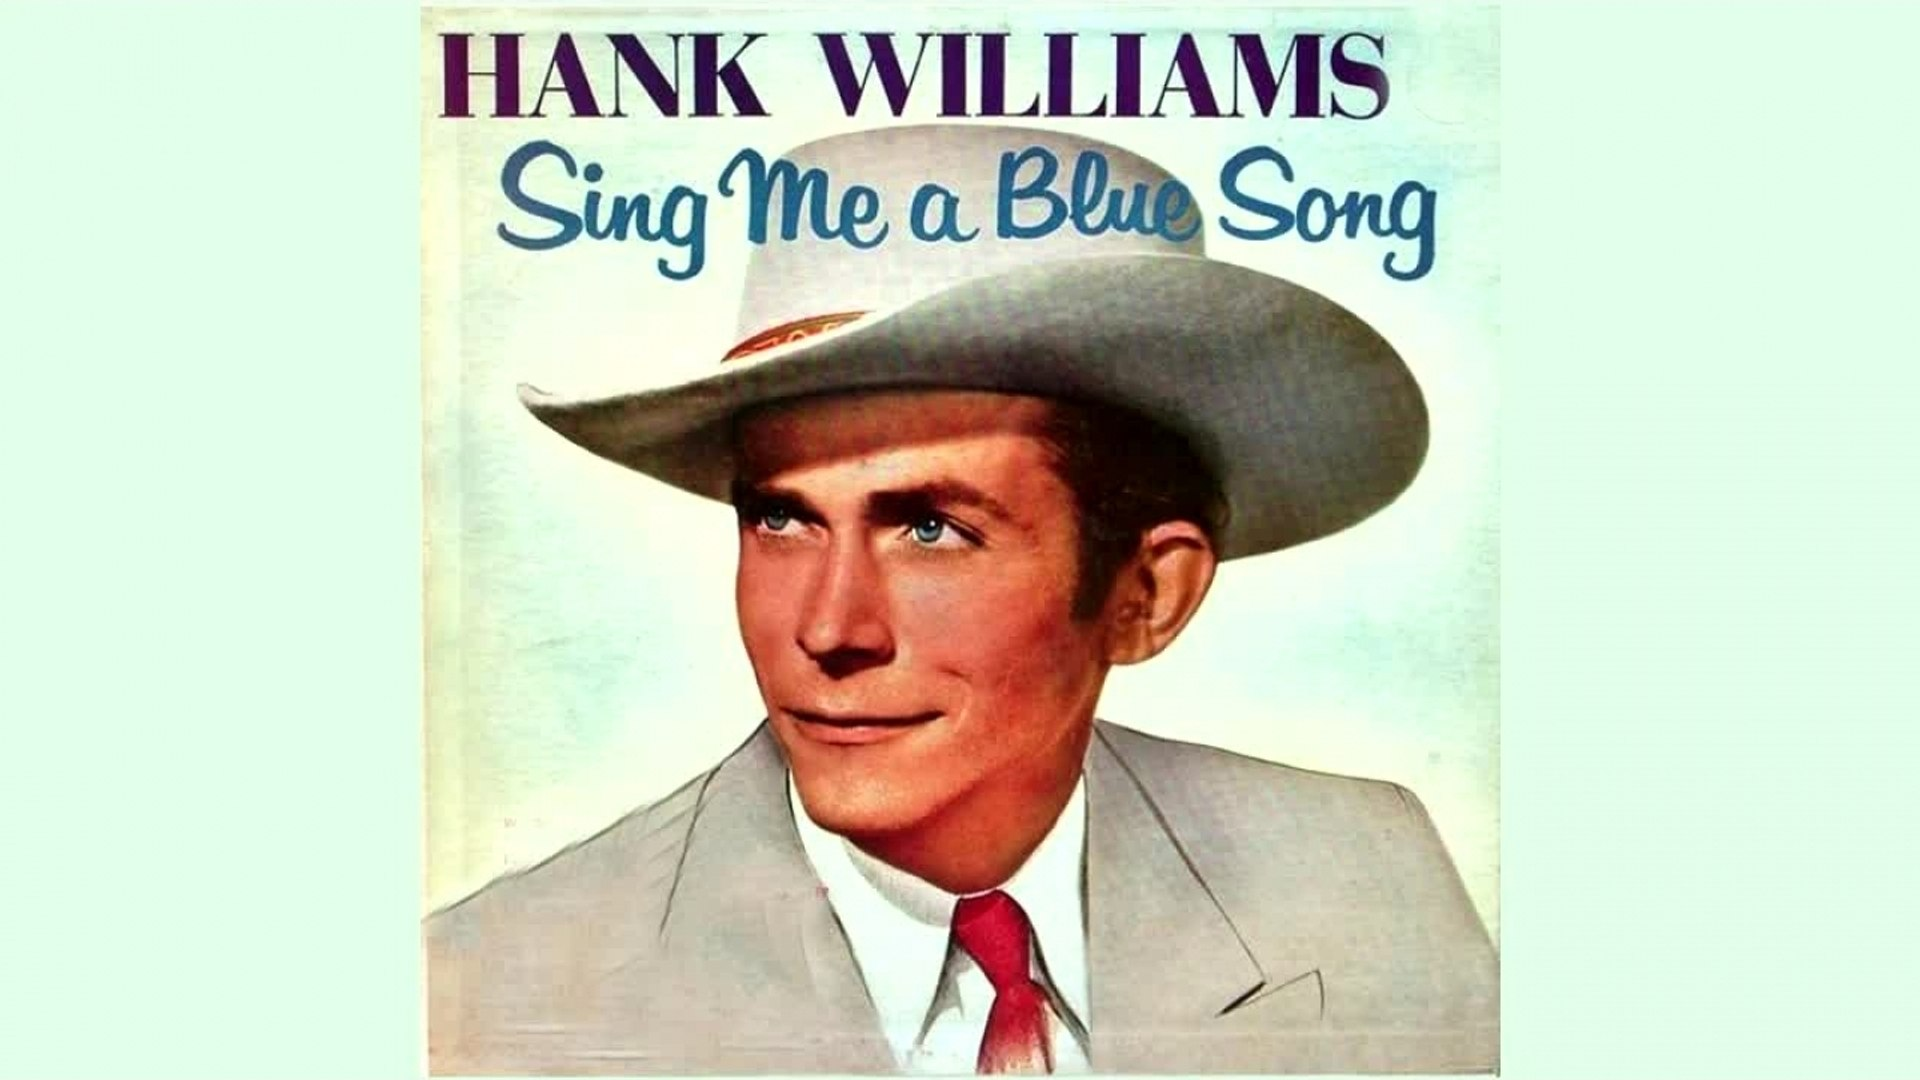 Hank Williams - A House Without Love